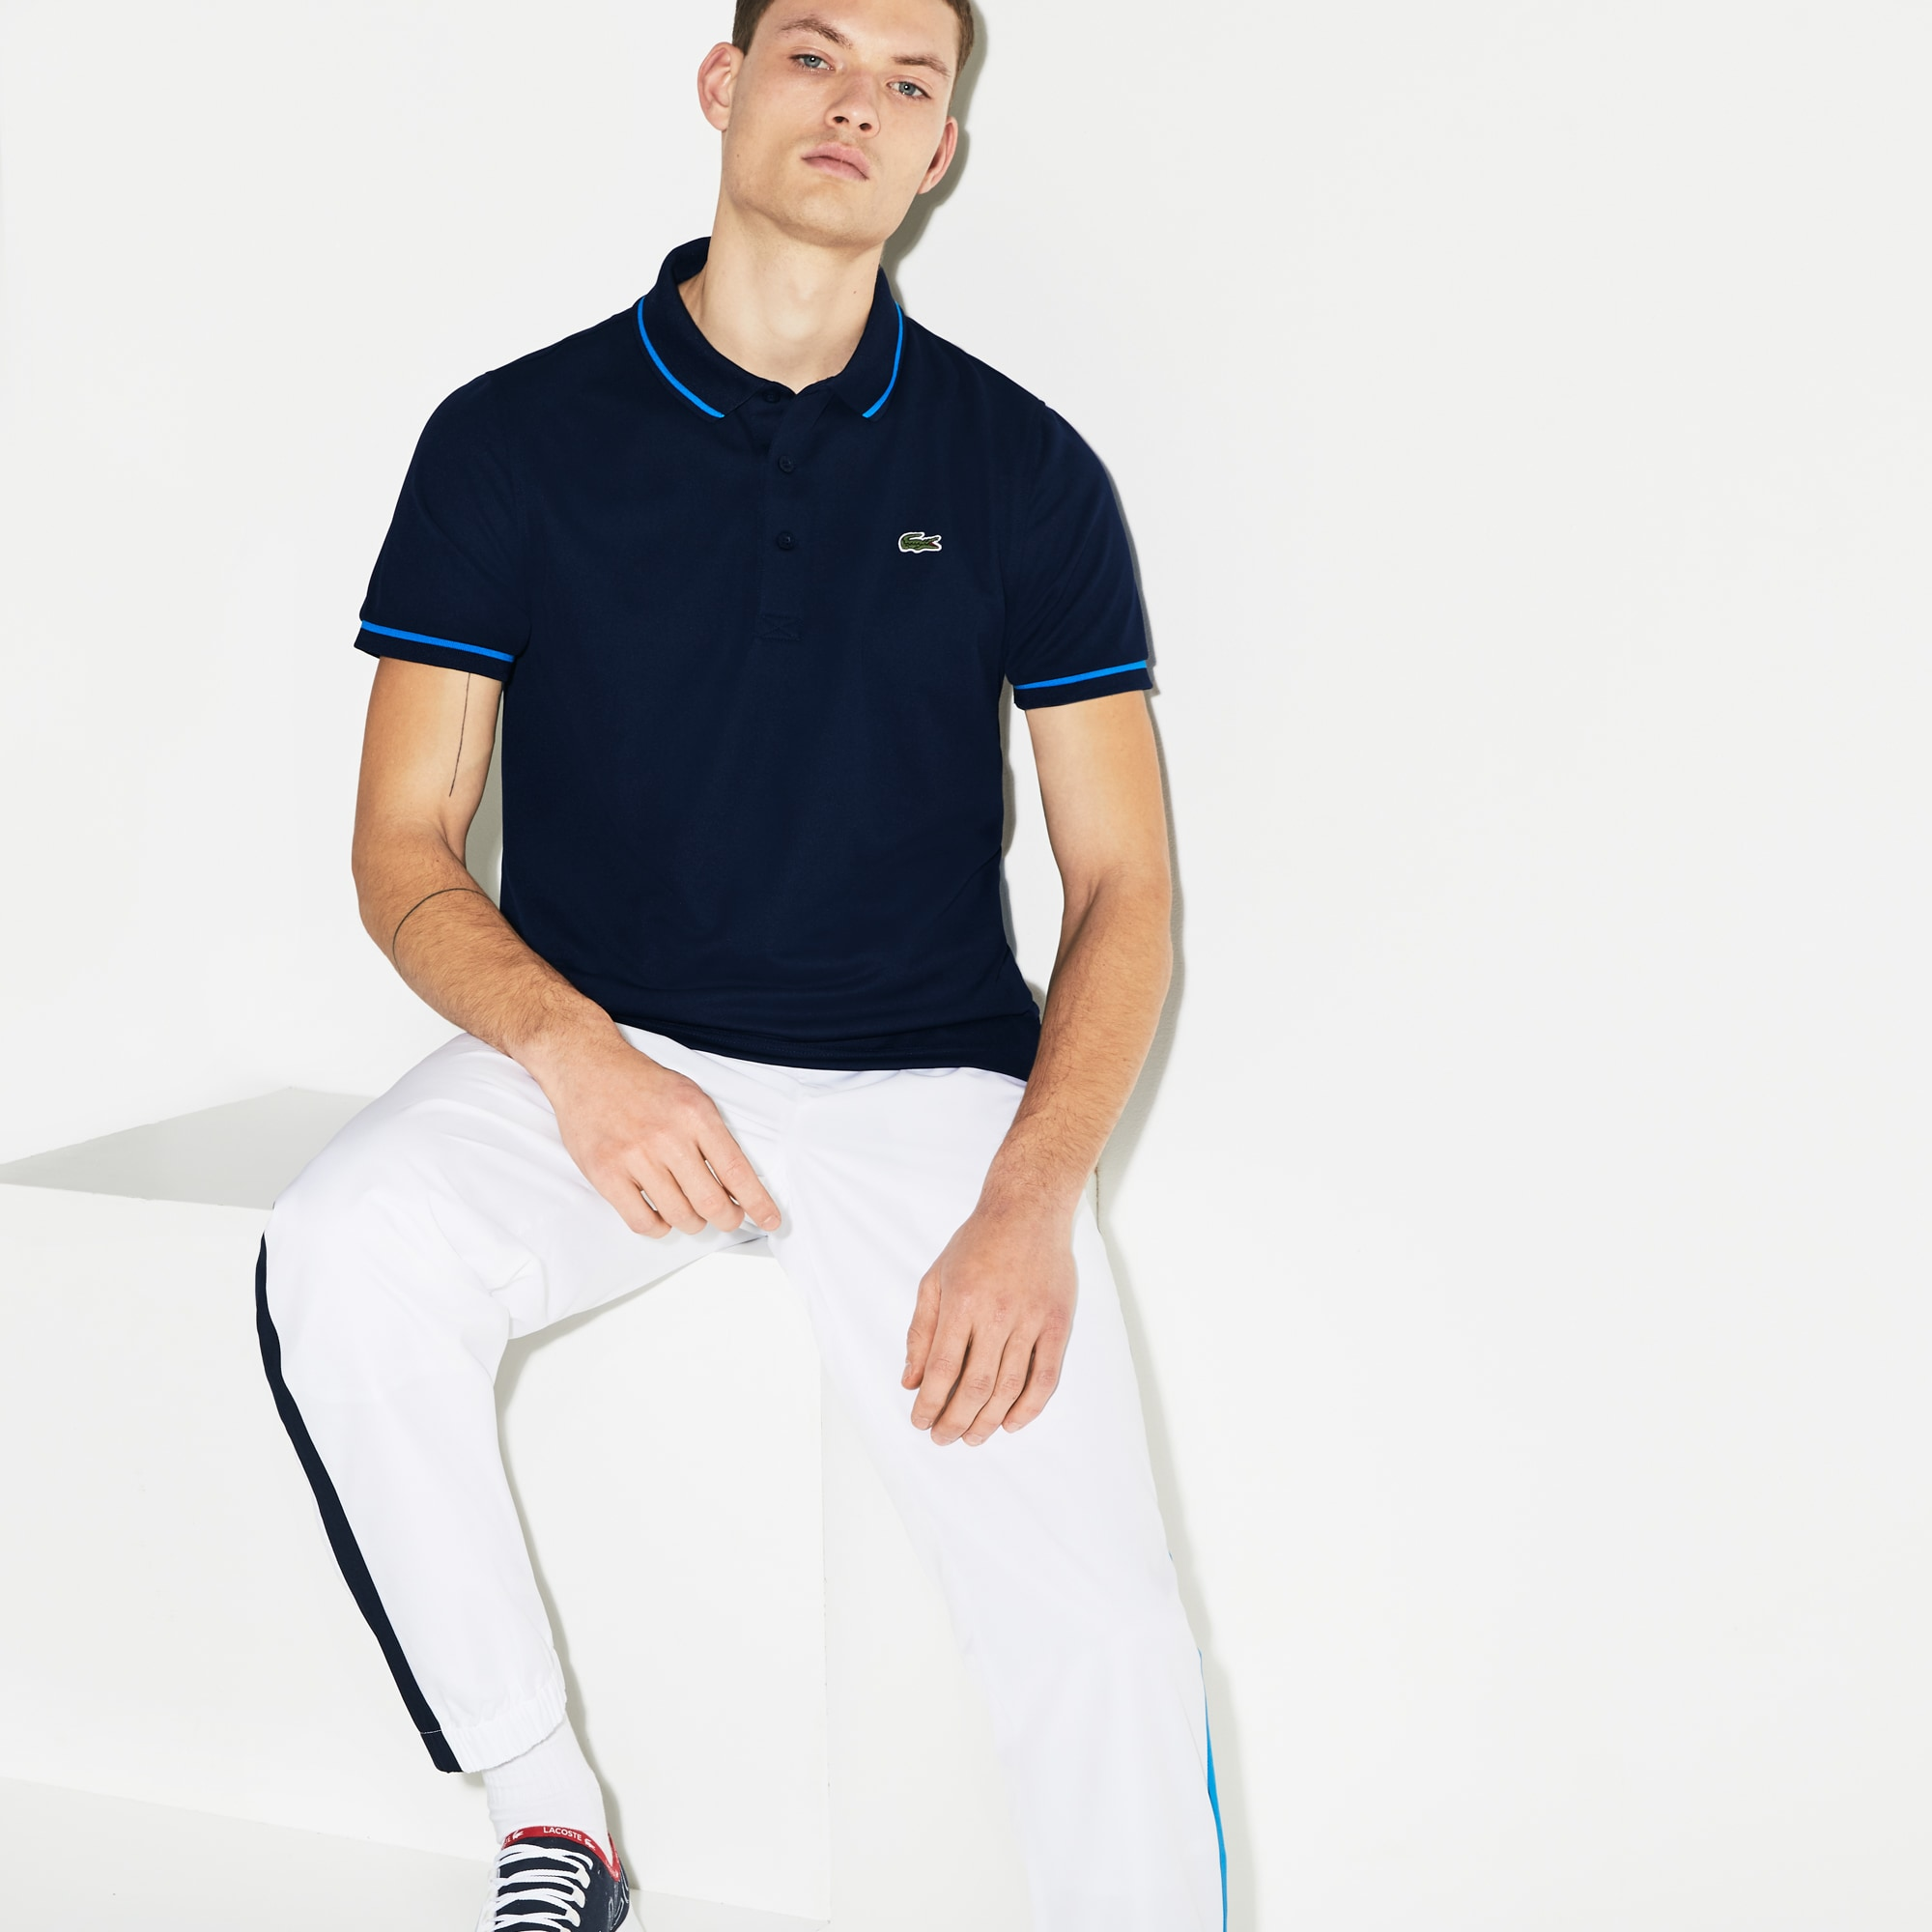 0f77c26847 Men's Lacoste SPORT Tennis Piped Technical Piqué Polo Shirt | LACOSTE